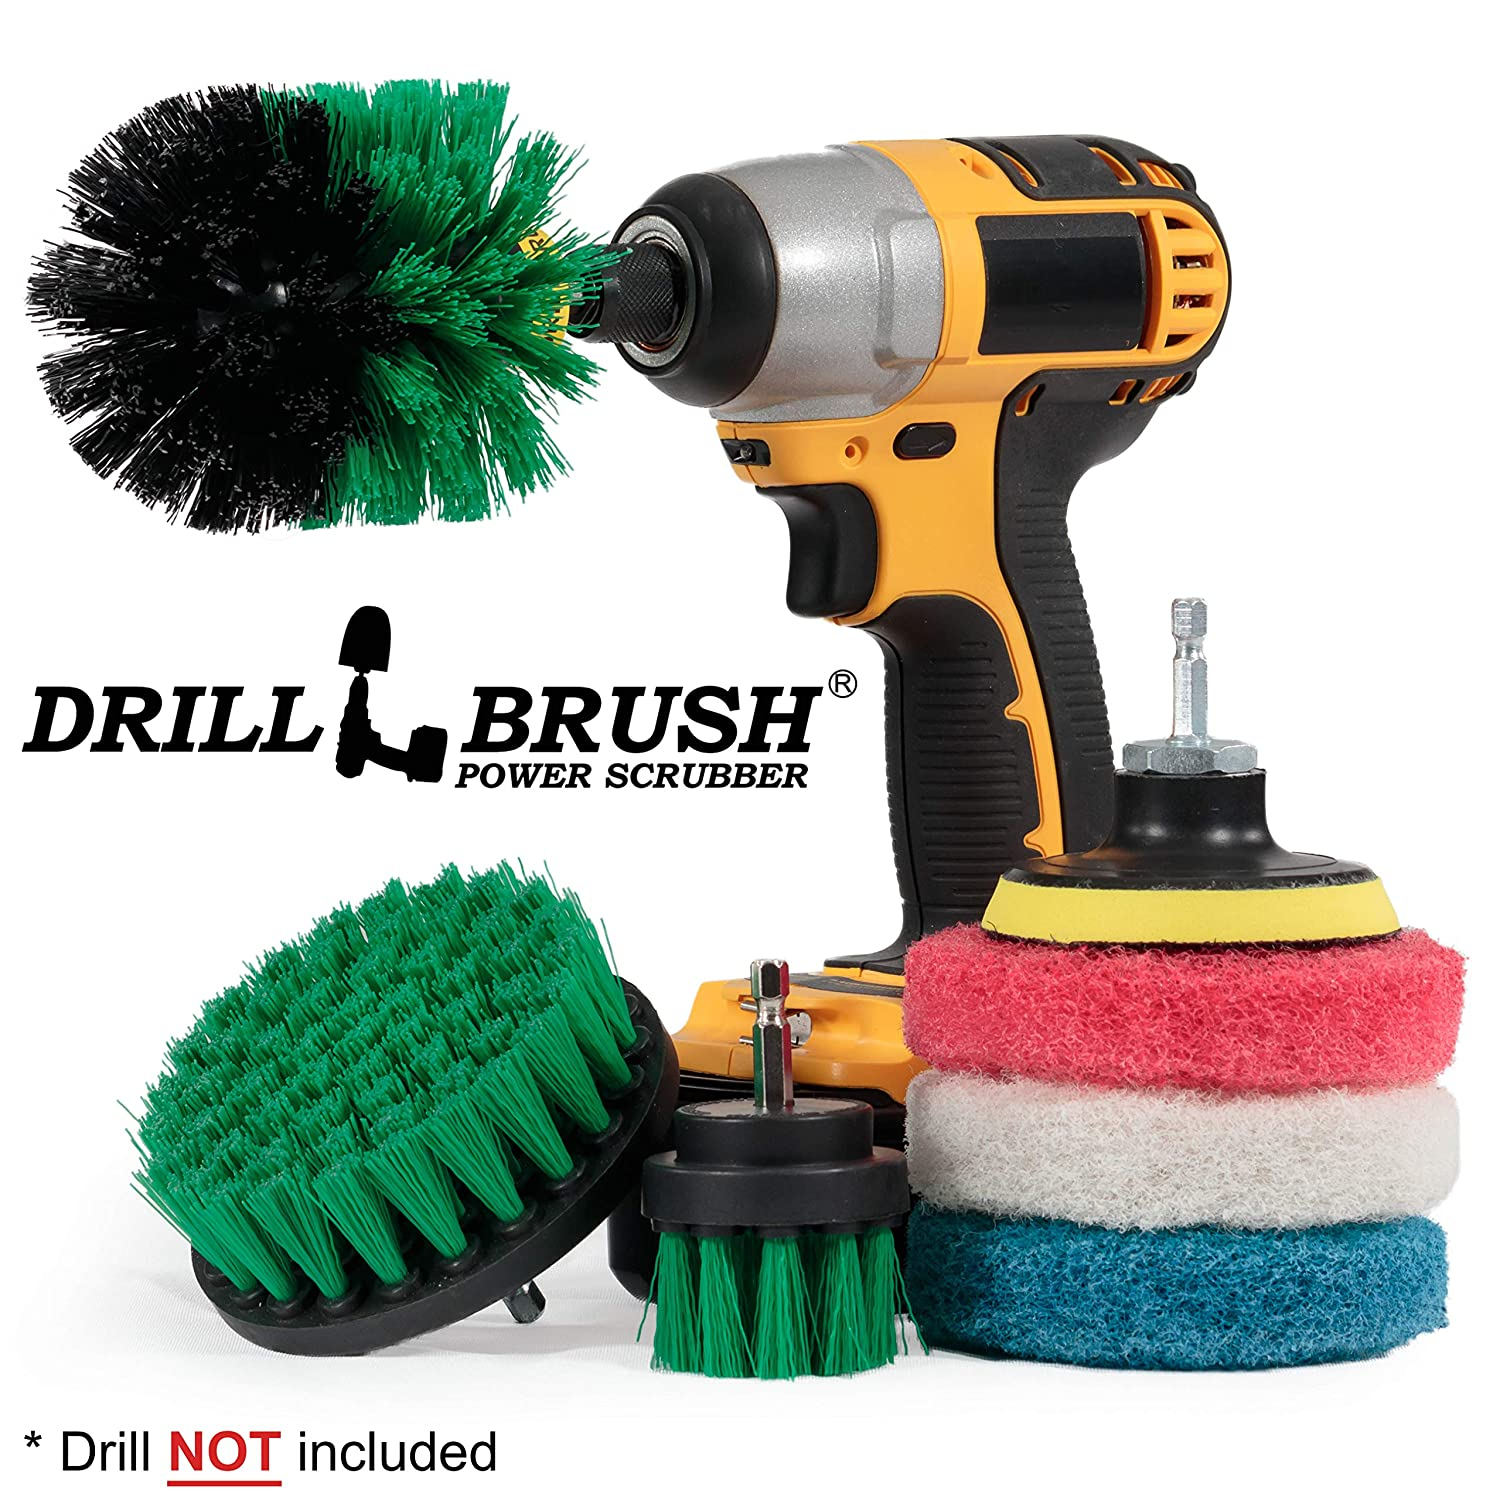 Drillbrush Cleaning Supplies - Brush Drill Attachment Kit - Drill Brush Pads - Kitchen Cleaning Brush - Oven Rack Cleaning - Scrub Brush - Power Cleaning Brush - Rotary Drill Brush Cordless Scrubber